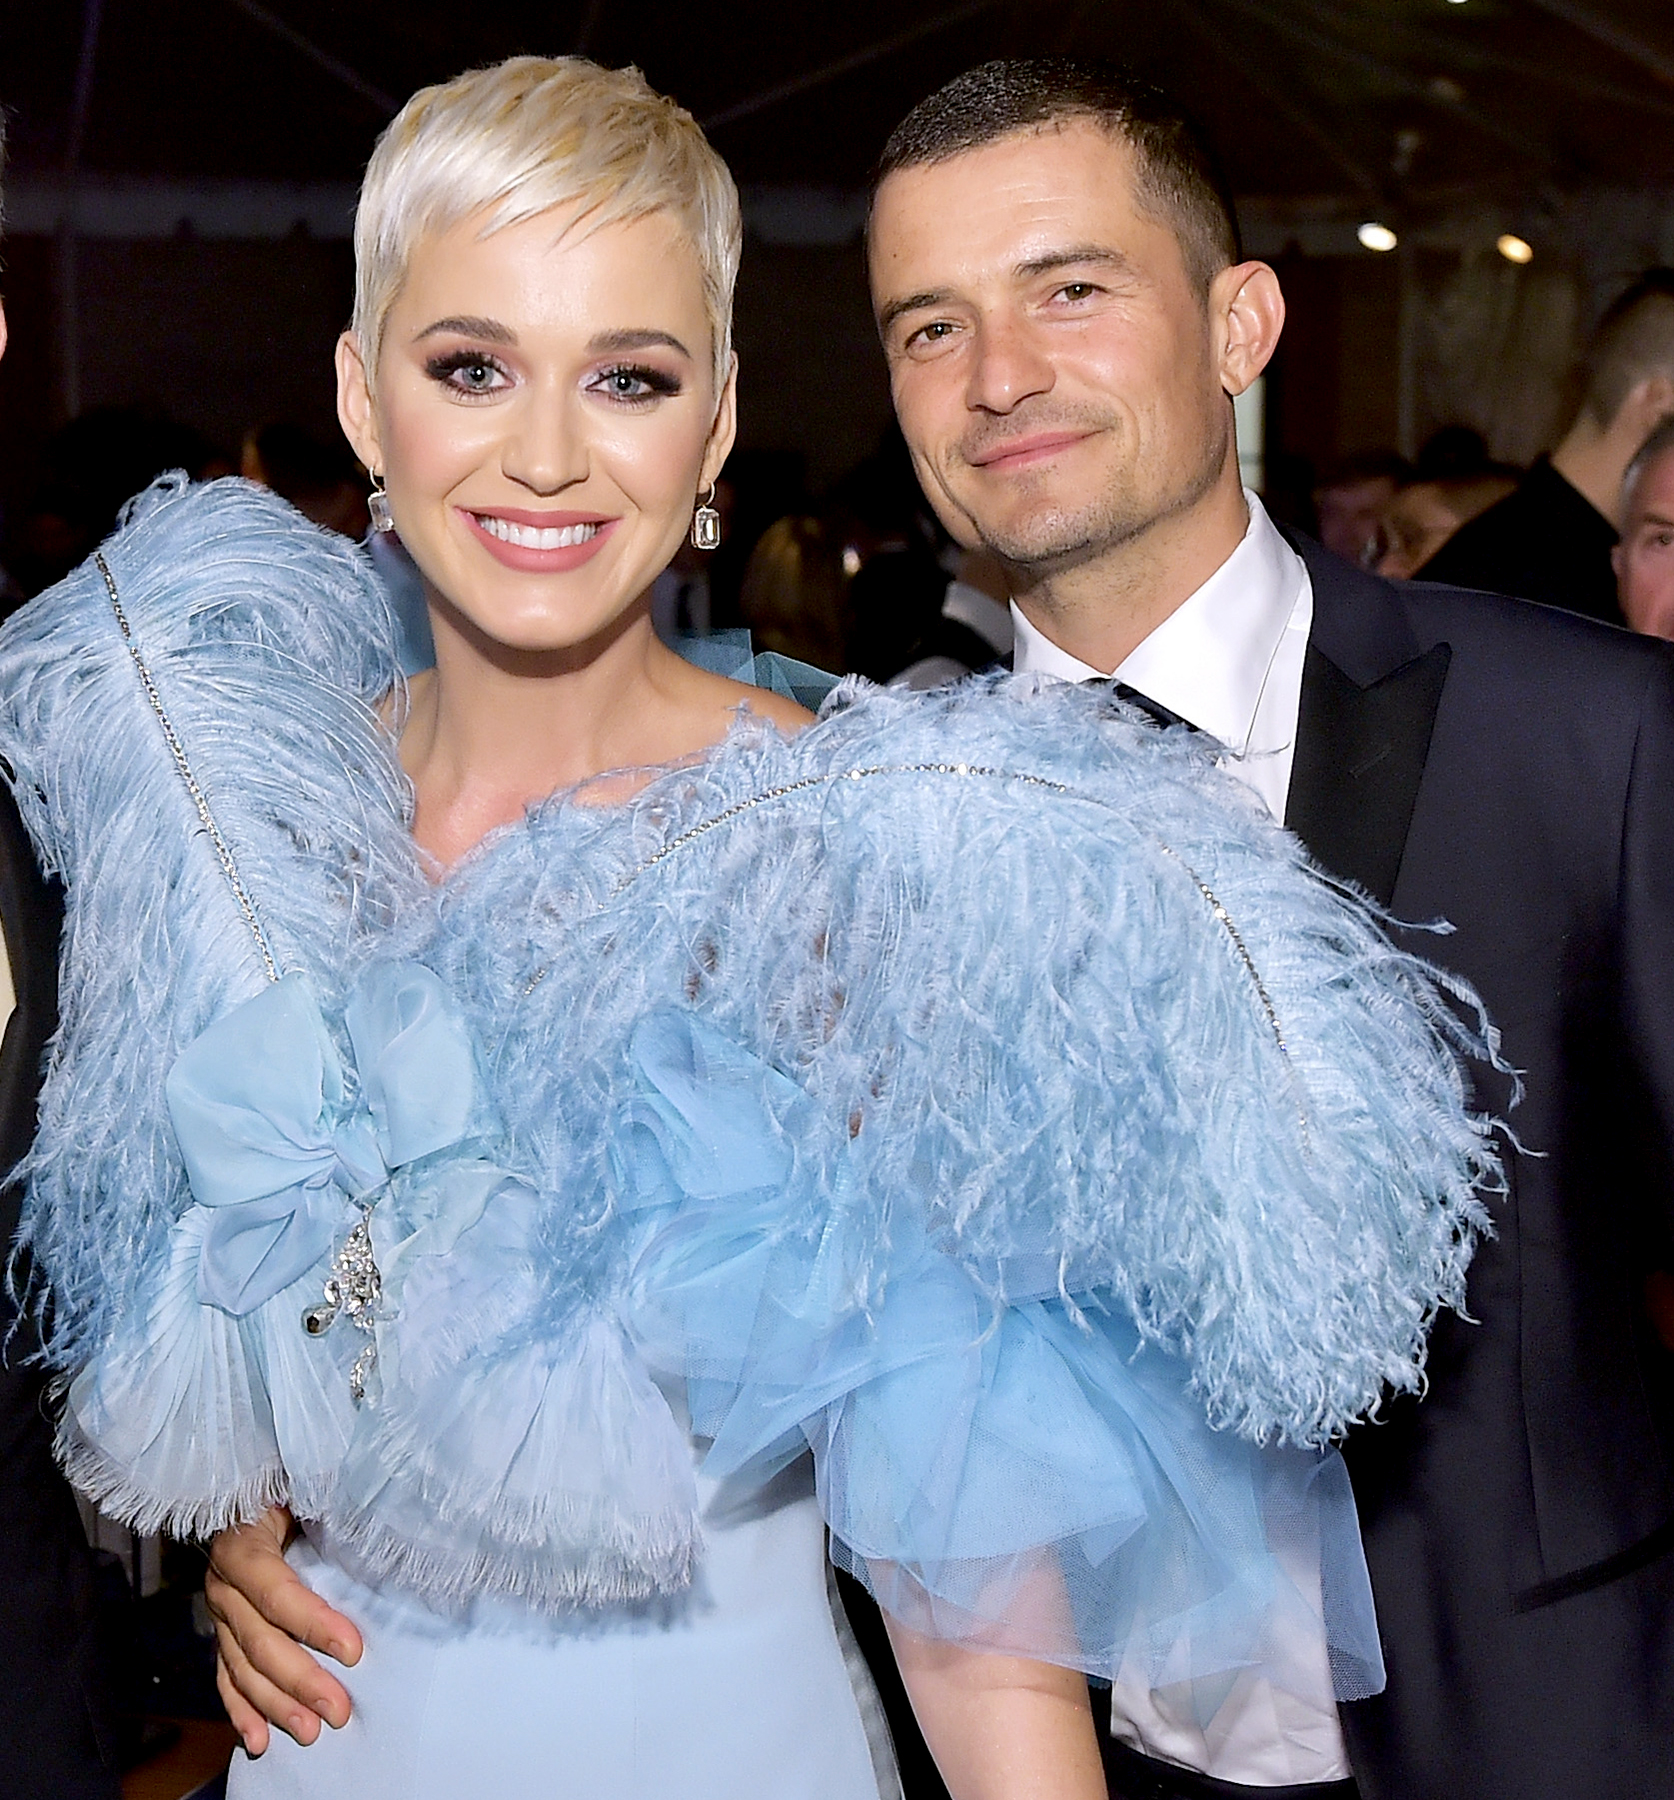 Engagement-and-baby-rumors katy perry orlando bloom - BEVERLY HILLS, CA – OCTOBER 18: Mayor of Los Angeles Eric Garcetti, Katy Perry, and Orlando Bloom attend the amfAR Gala Los Angeles 2018 at Wallis Annenberg Center for the Performing Arts on October 18, 2018 in Beverly Hills, California. (Photo by Stefanie Keenan/Getty Images for Perrier-Jouët and Absolut Elyx)